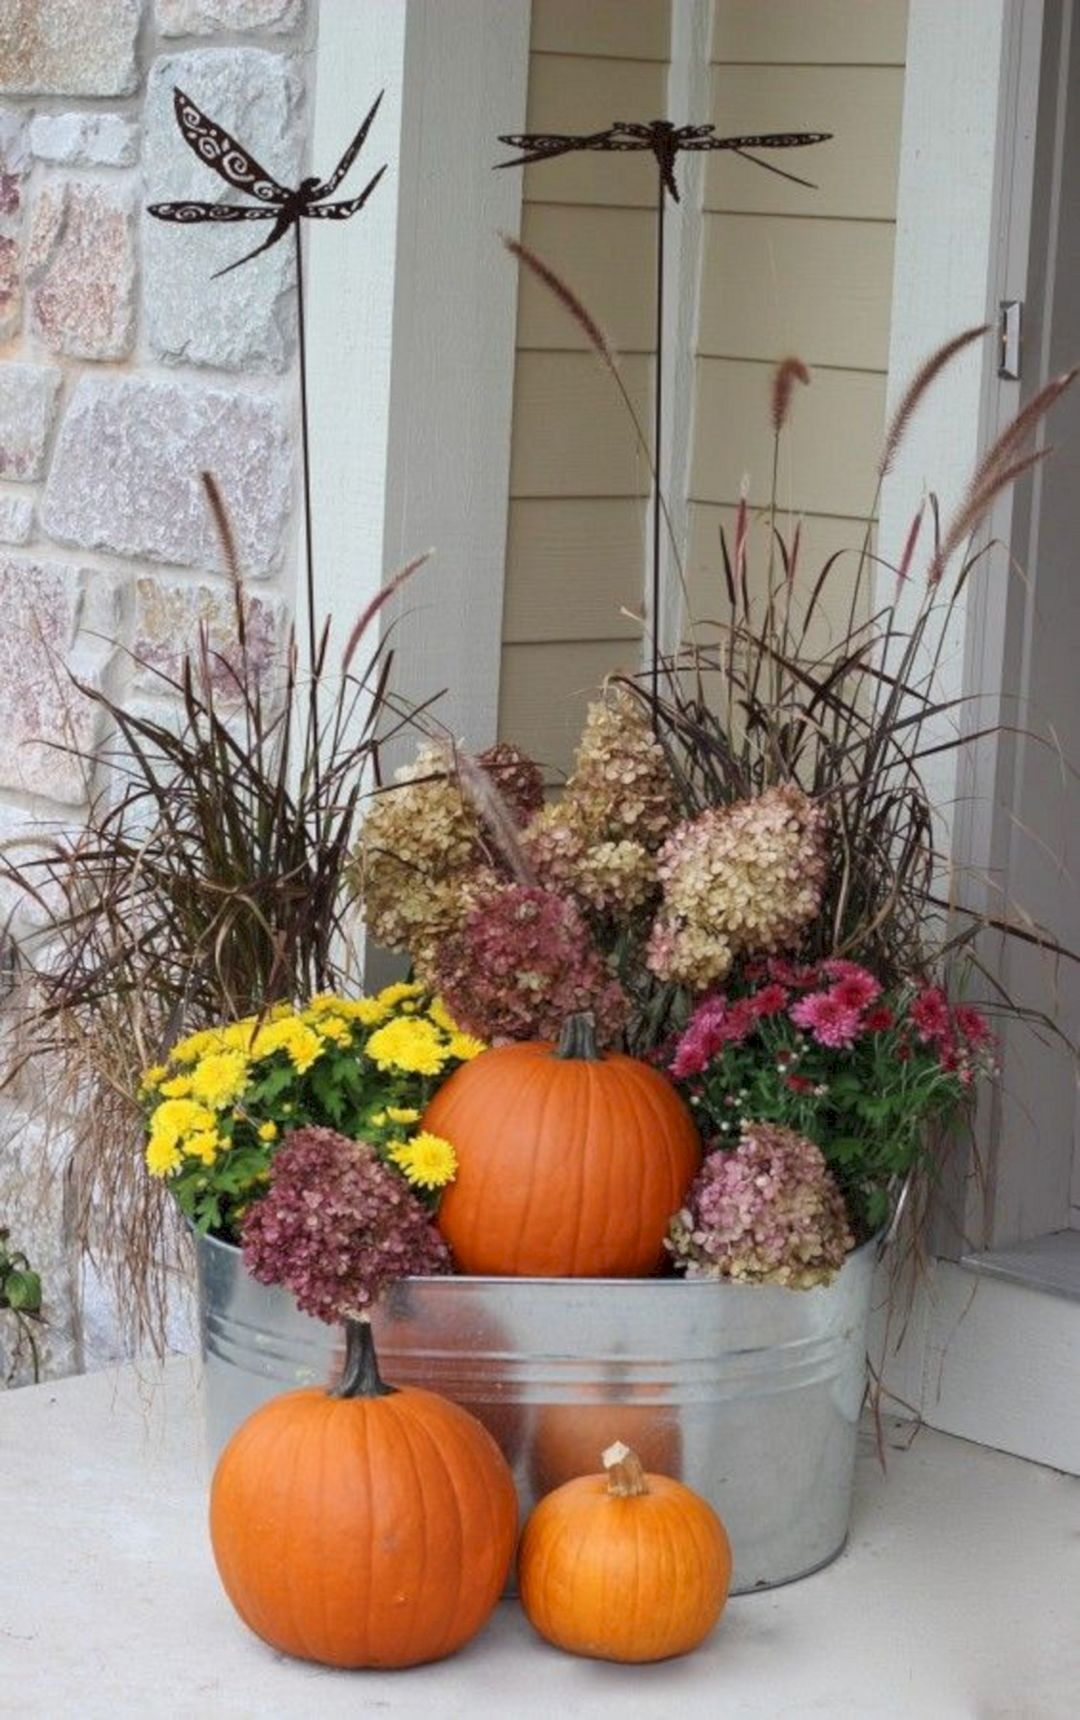 15+ Most Awesome Fall Front Porch Decor Ideas For Your Home #fallfrontporchdecor